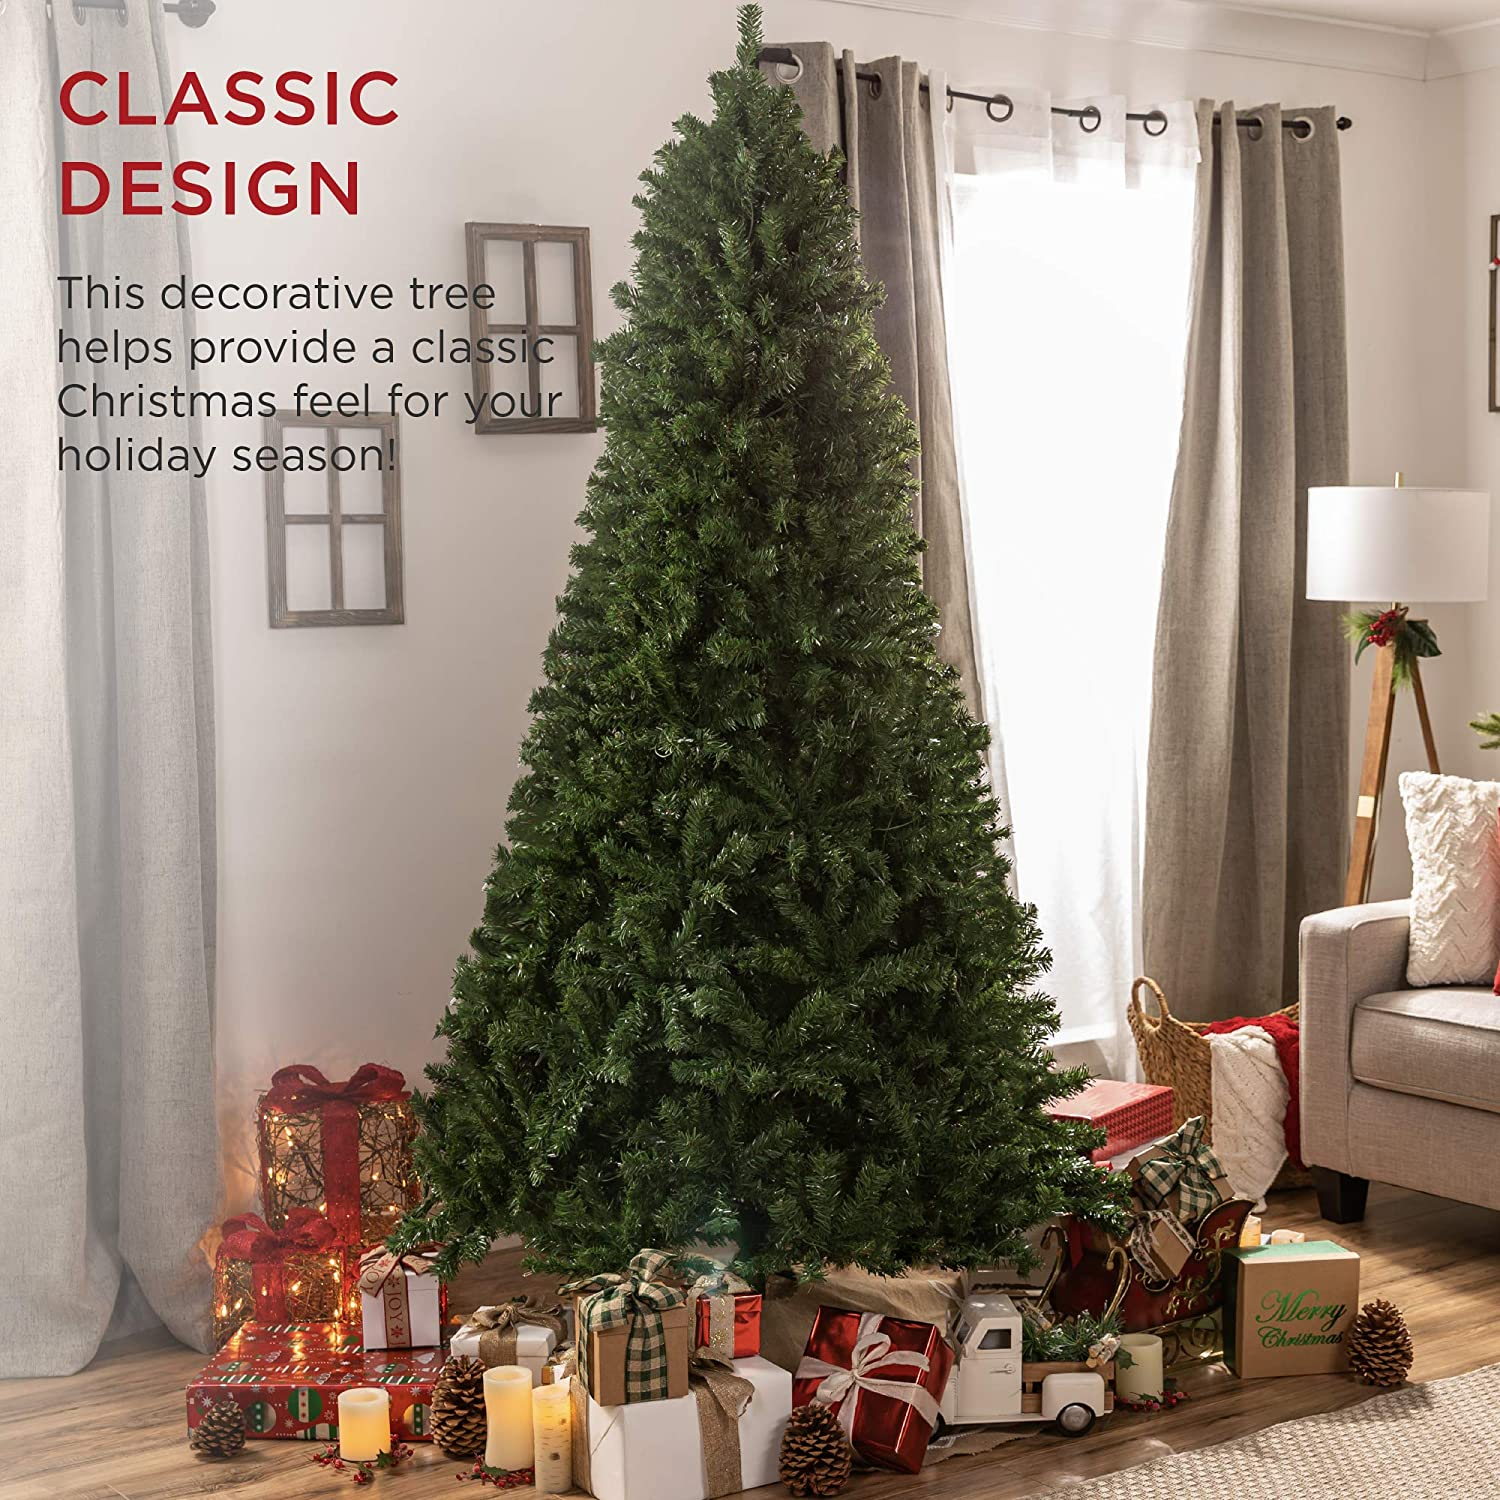 Best Choice Products 7 5ft Premium Spruce Artificial Holiday Christmas Tree For Home Office Party Decoration W 1 346 Branch Tips Easy Assembly Metal Hinges Foldable Base Walmart Com Walmart Com